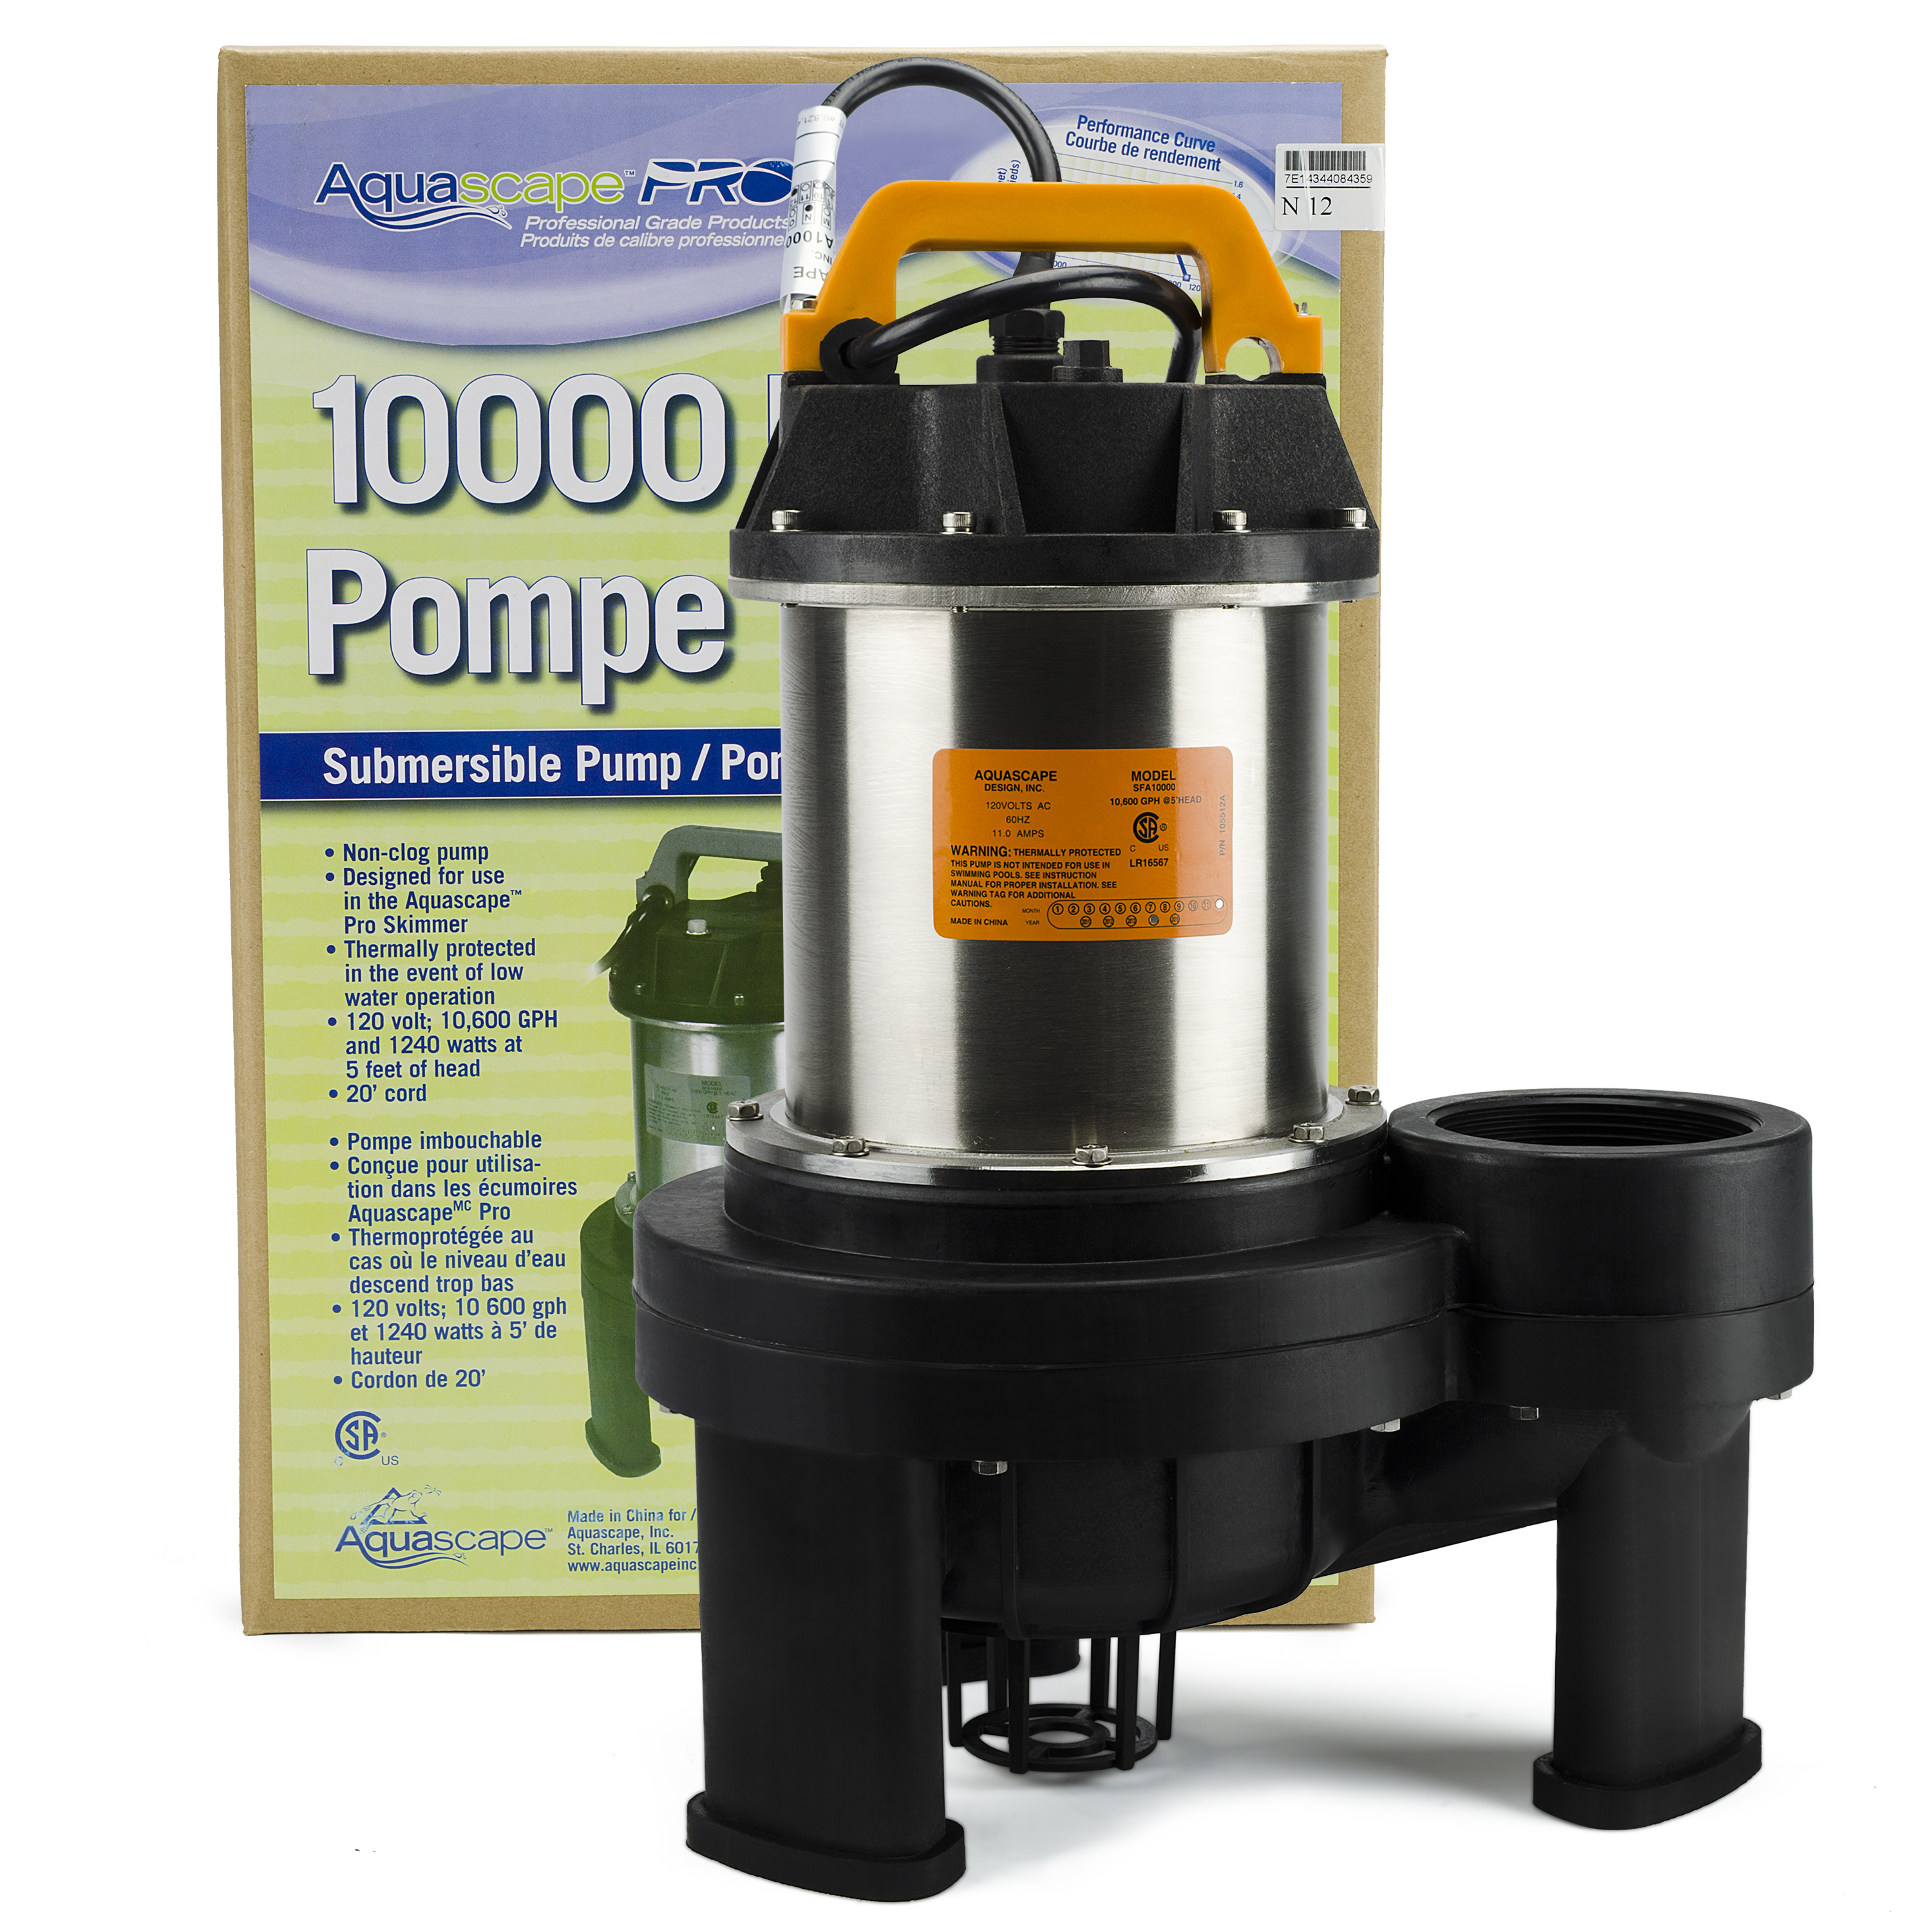 AquascapePRO 10000 Pond Pump